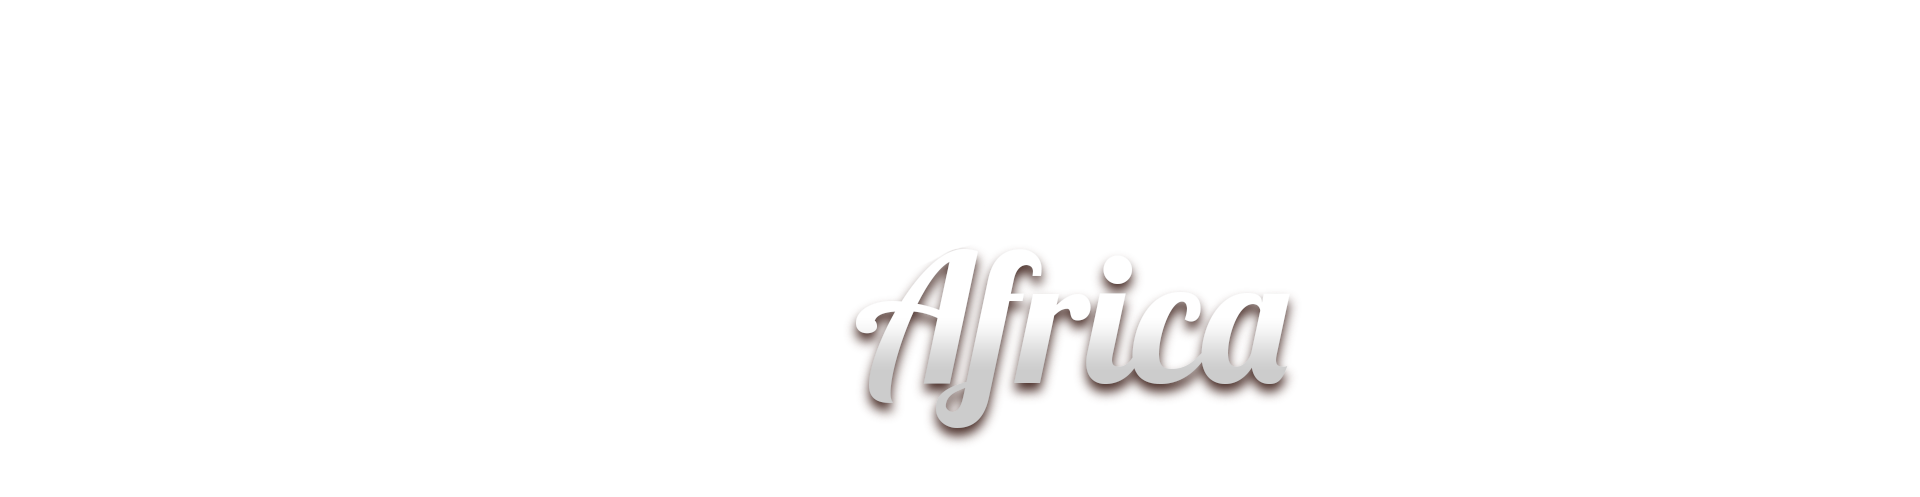 web_africa_ingles.png